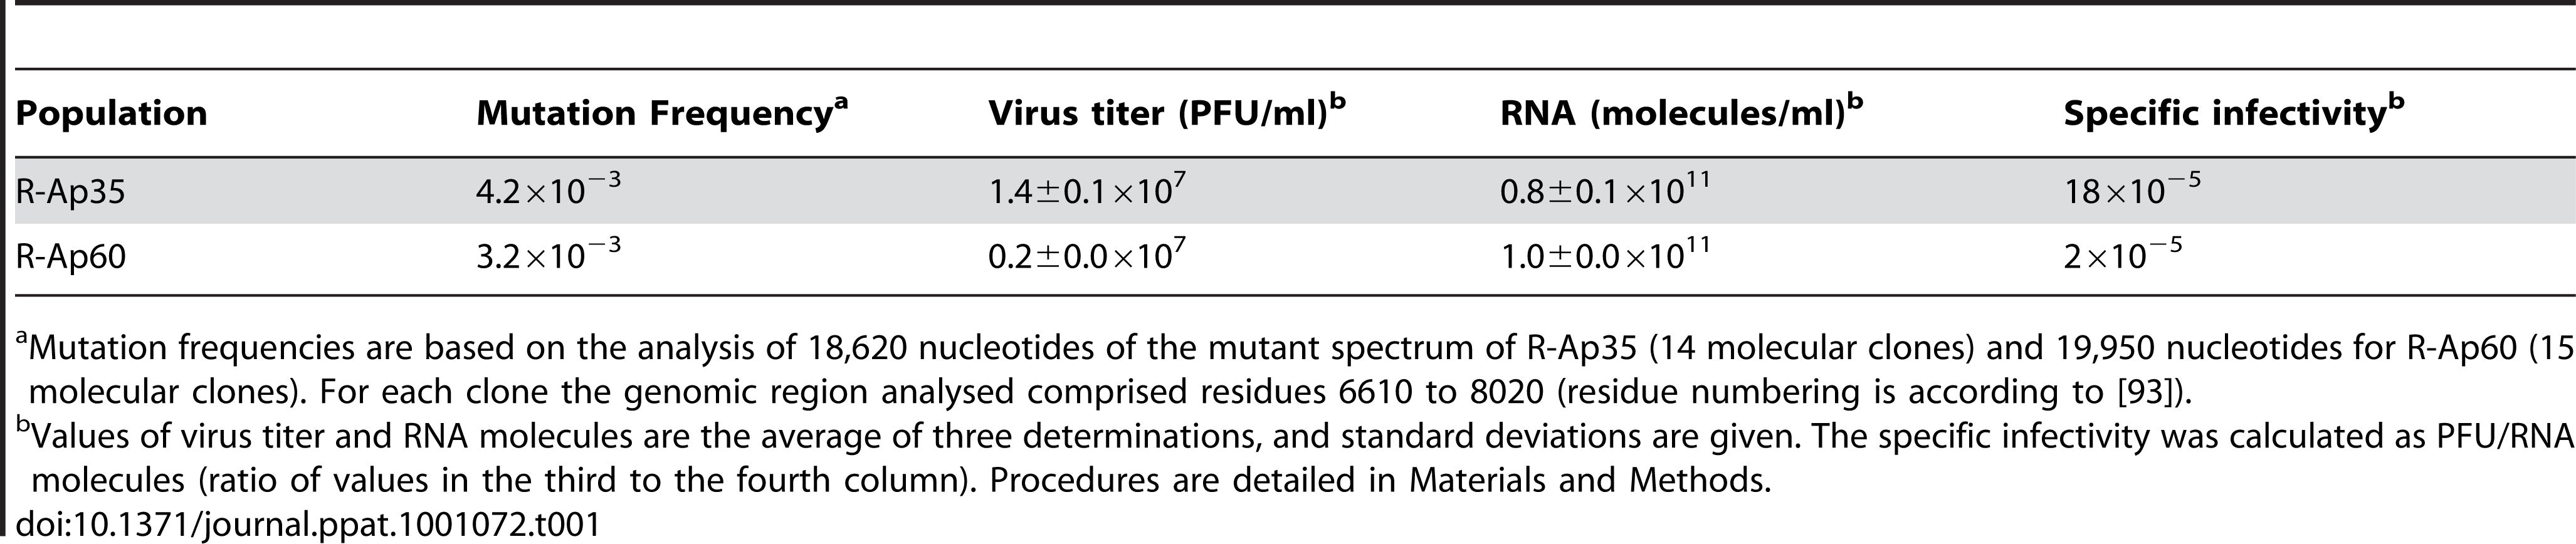 Specific infectivity of mutant FMDV populations.